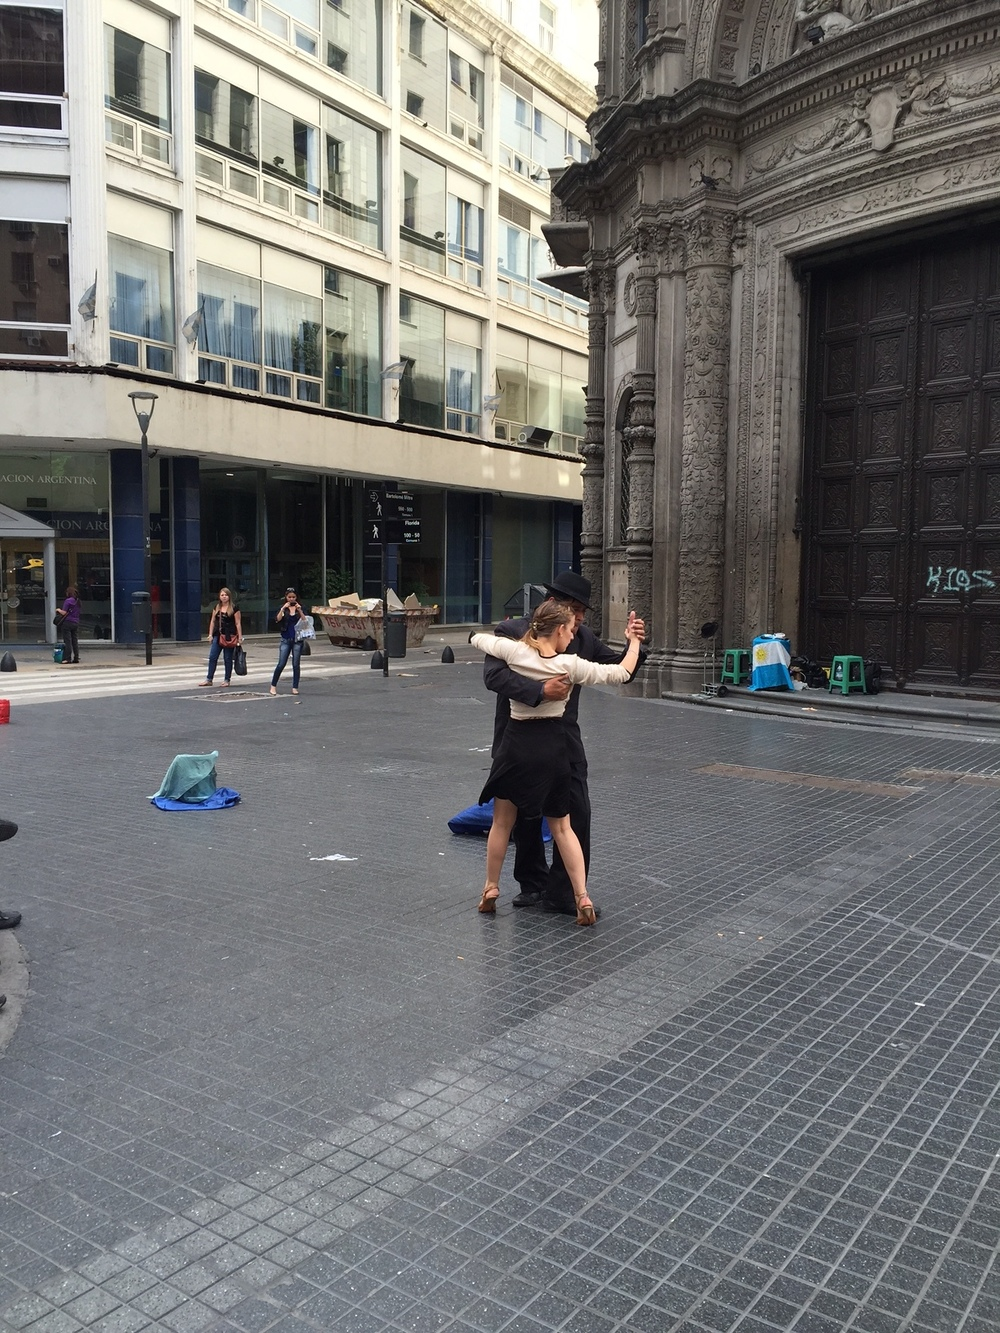 I was determined to go to a tango show, that is before I realized you could find street performers in just about every neighborhood in Buenos Aires. It's fun to sit and watch people so passionate about their craft.